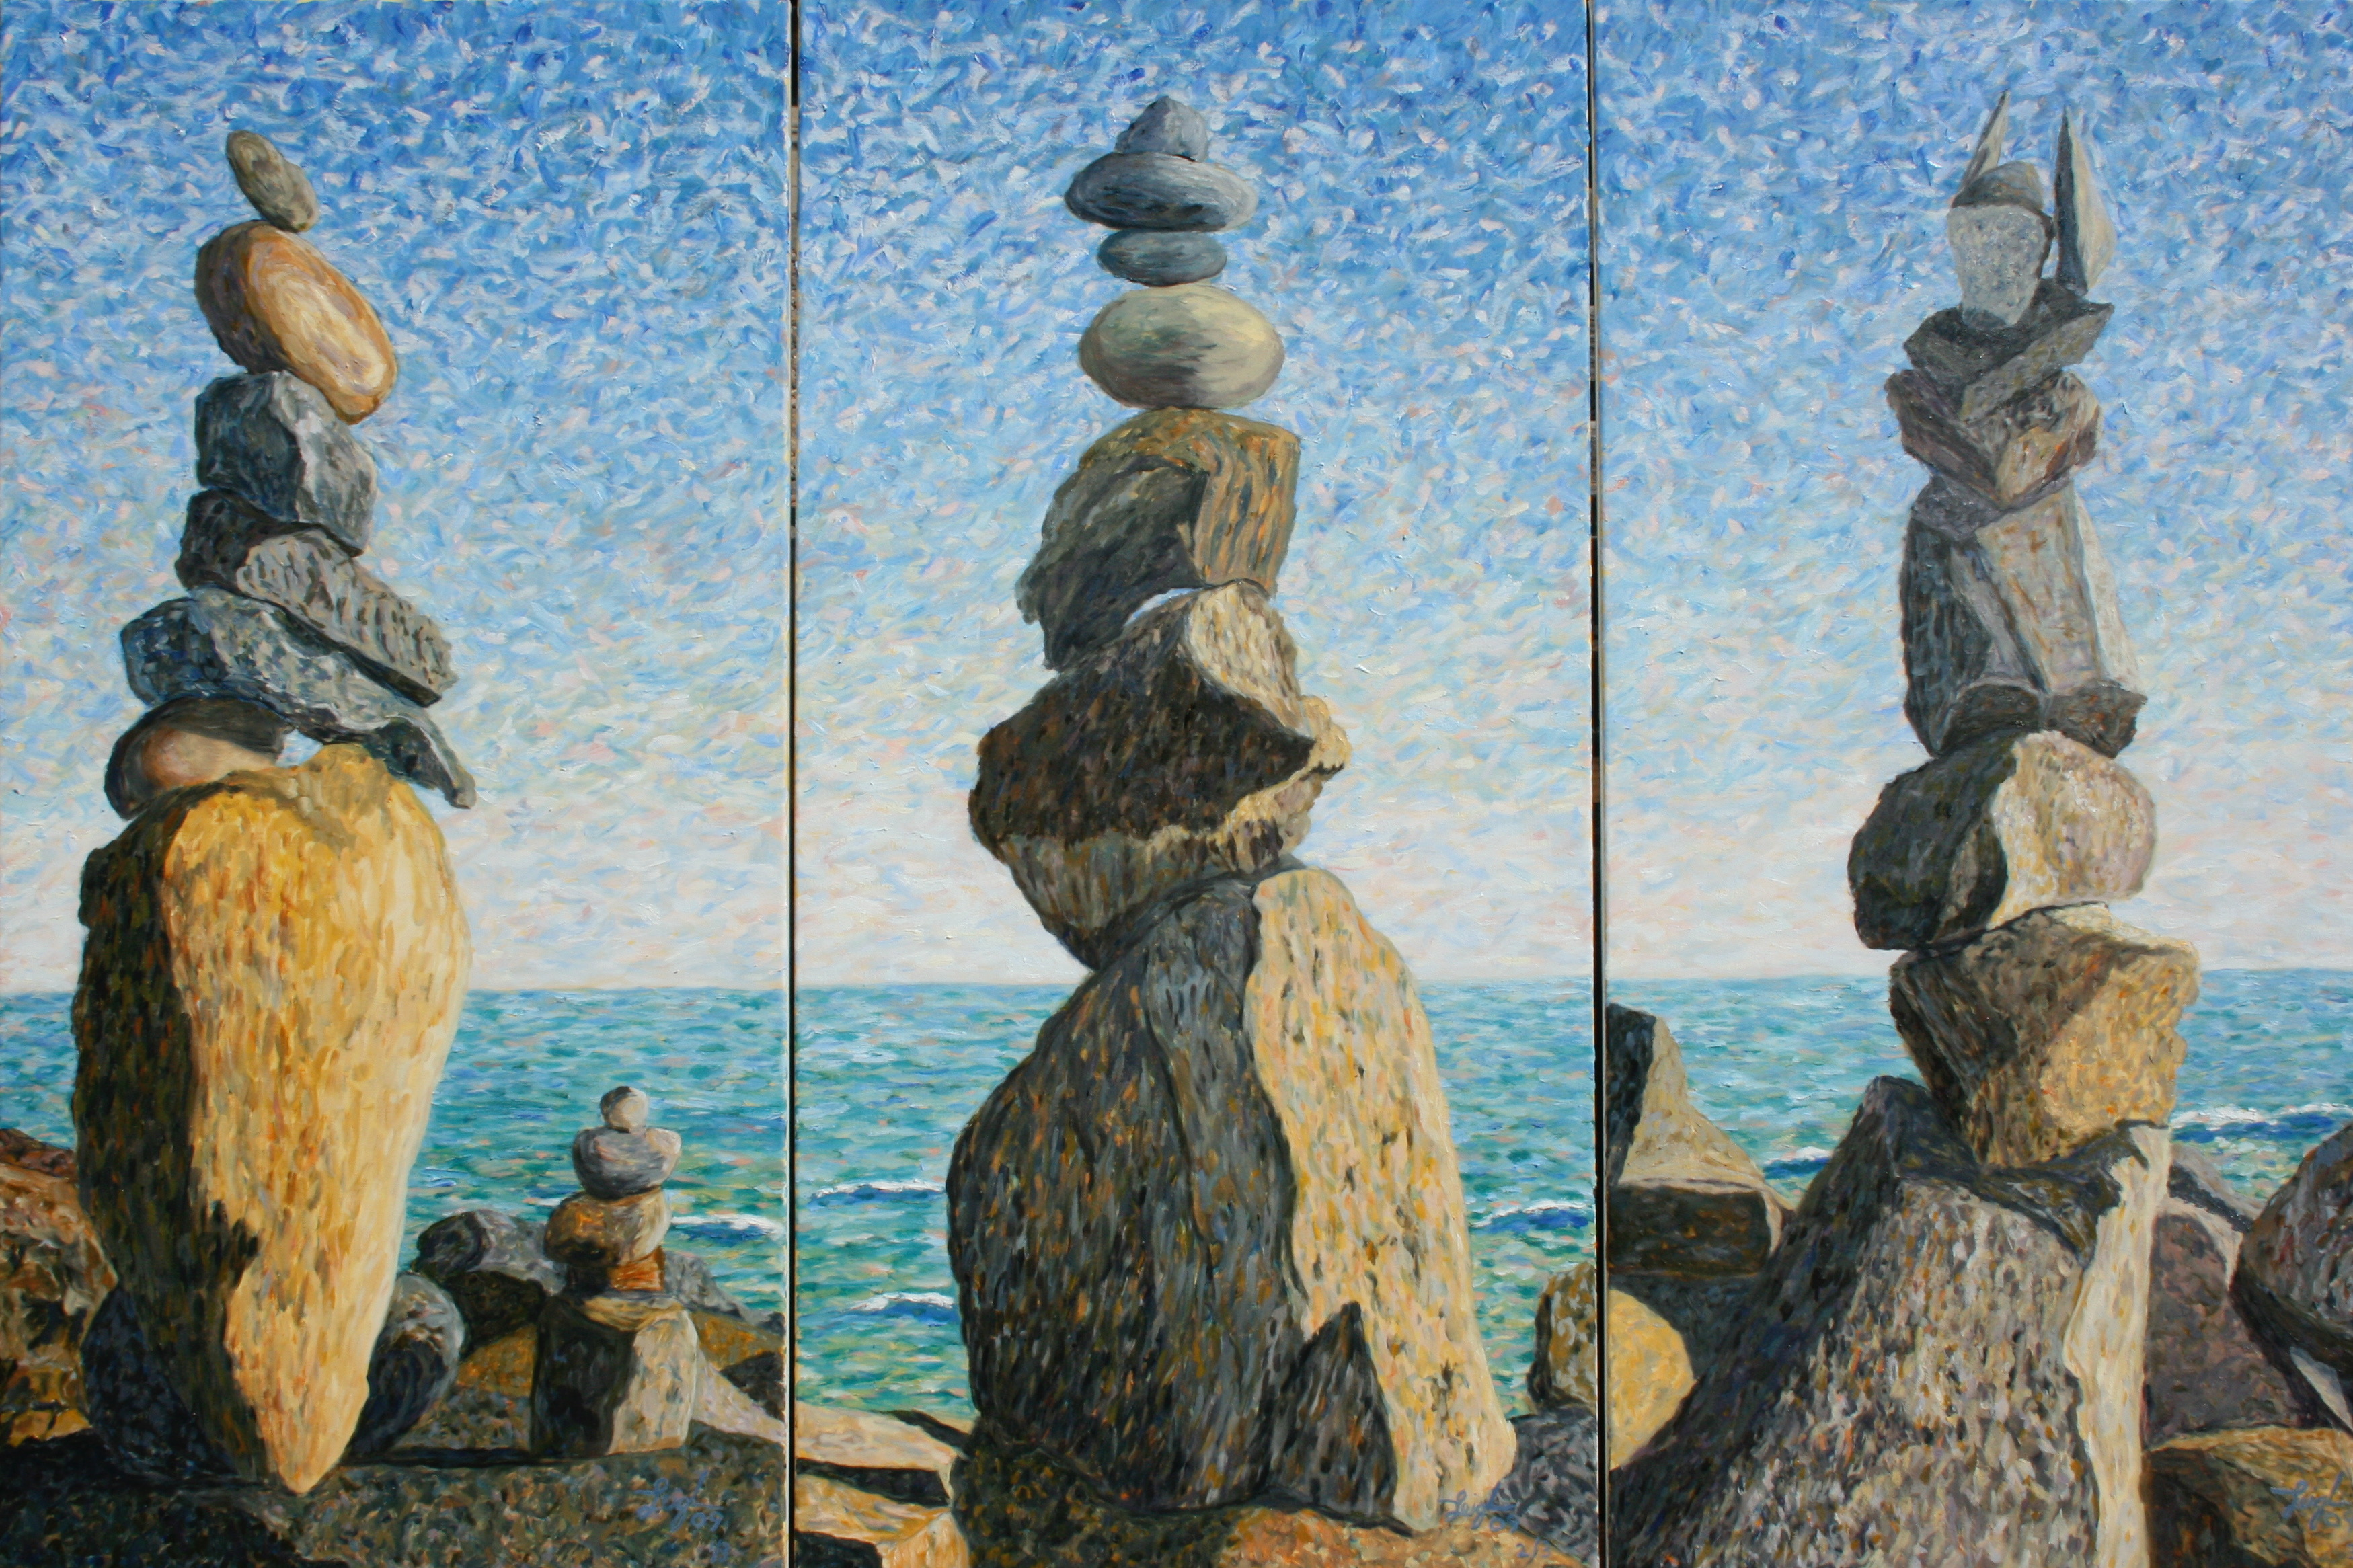 Impermanence: The Rock Sculptures ~  Carolyn Costin, Malibu, CA 2009 • 3 panels • 72 x 48